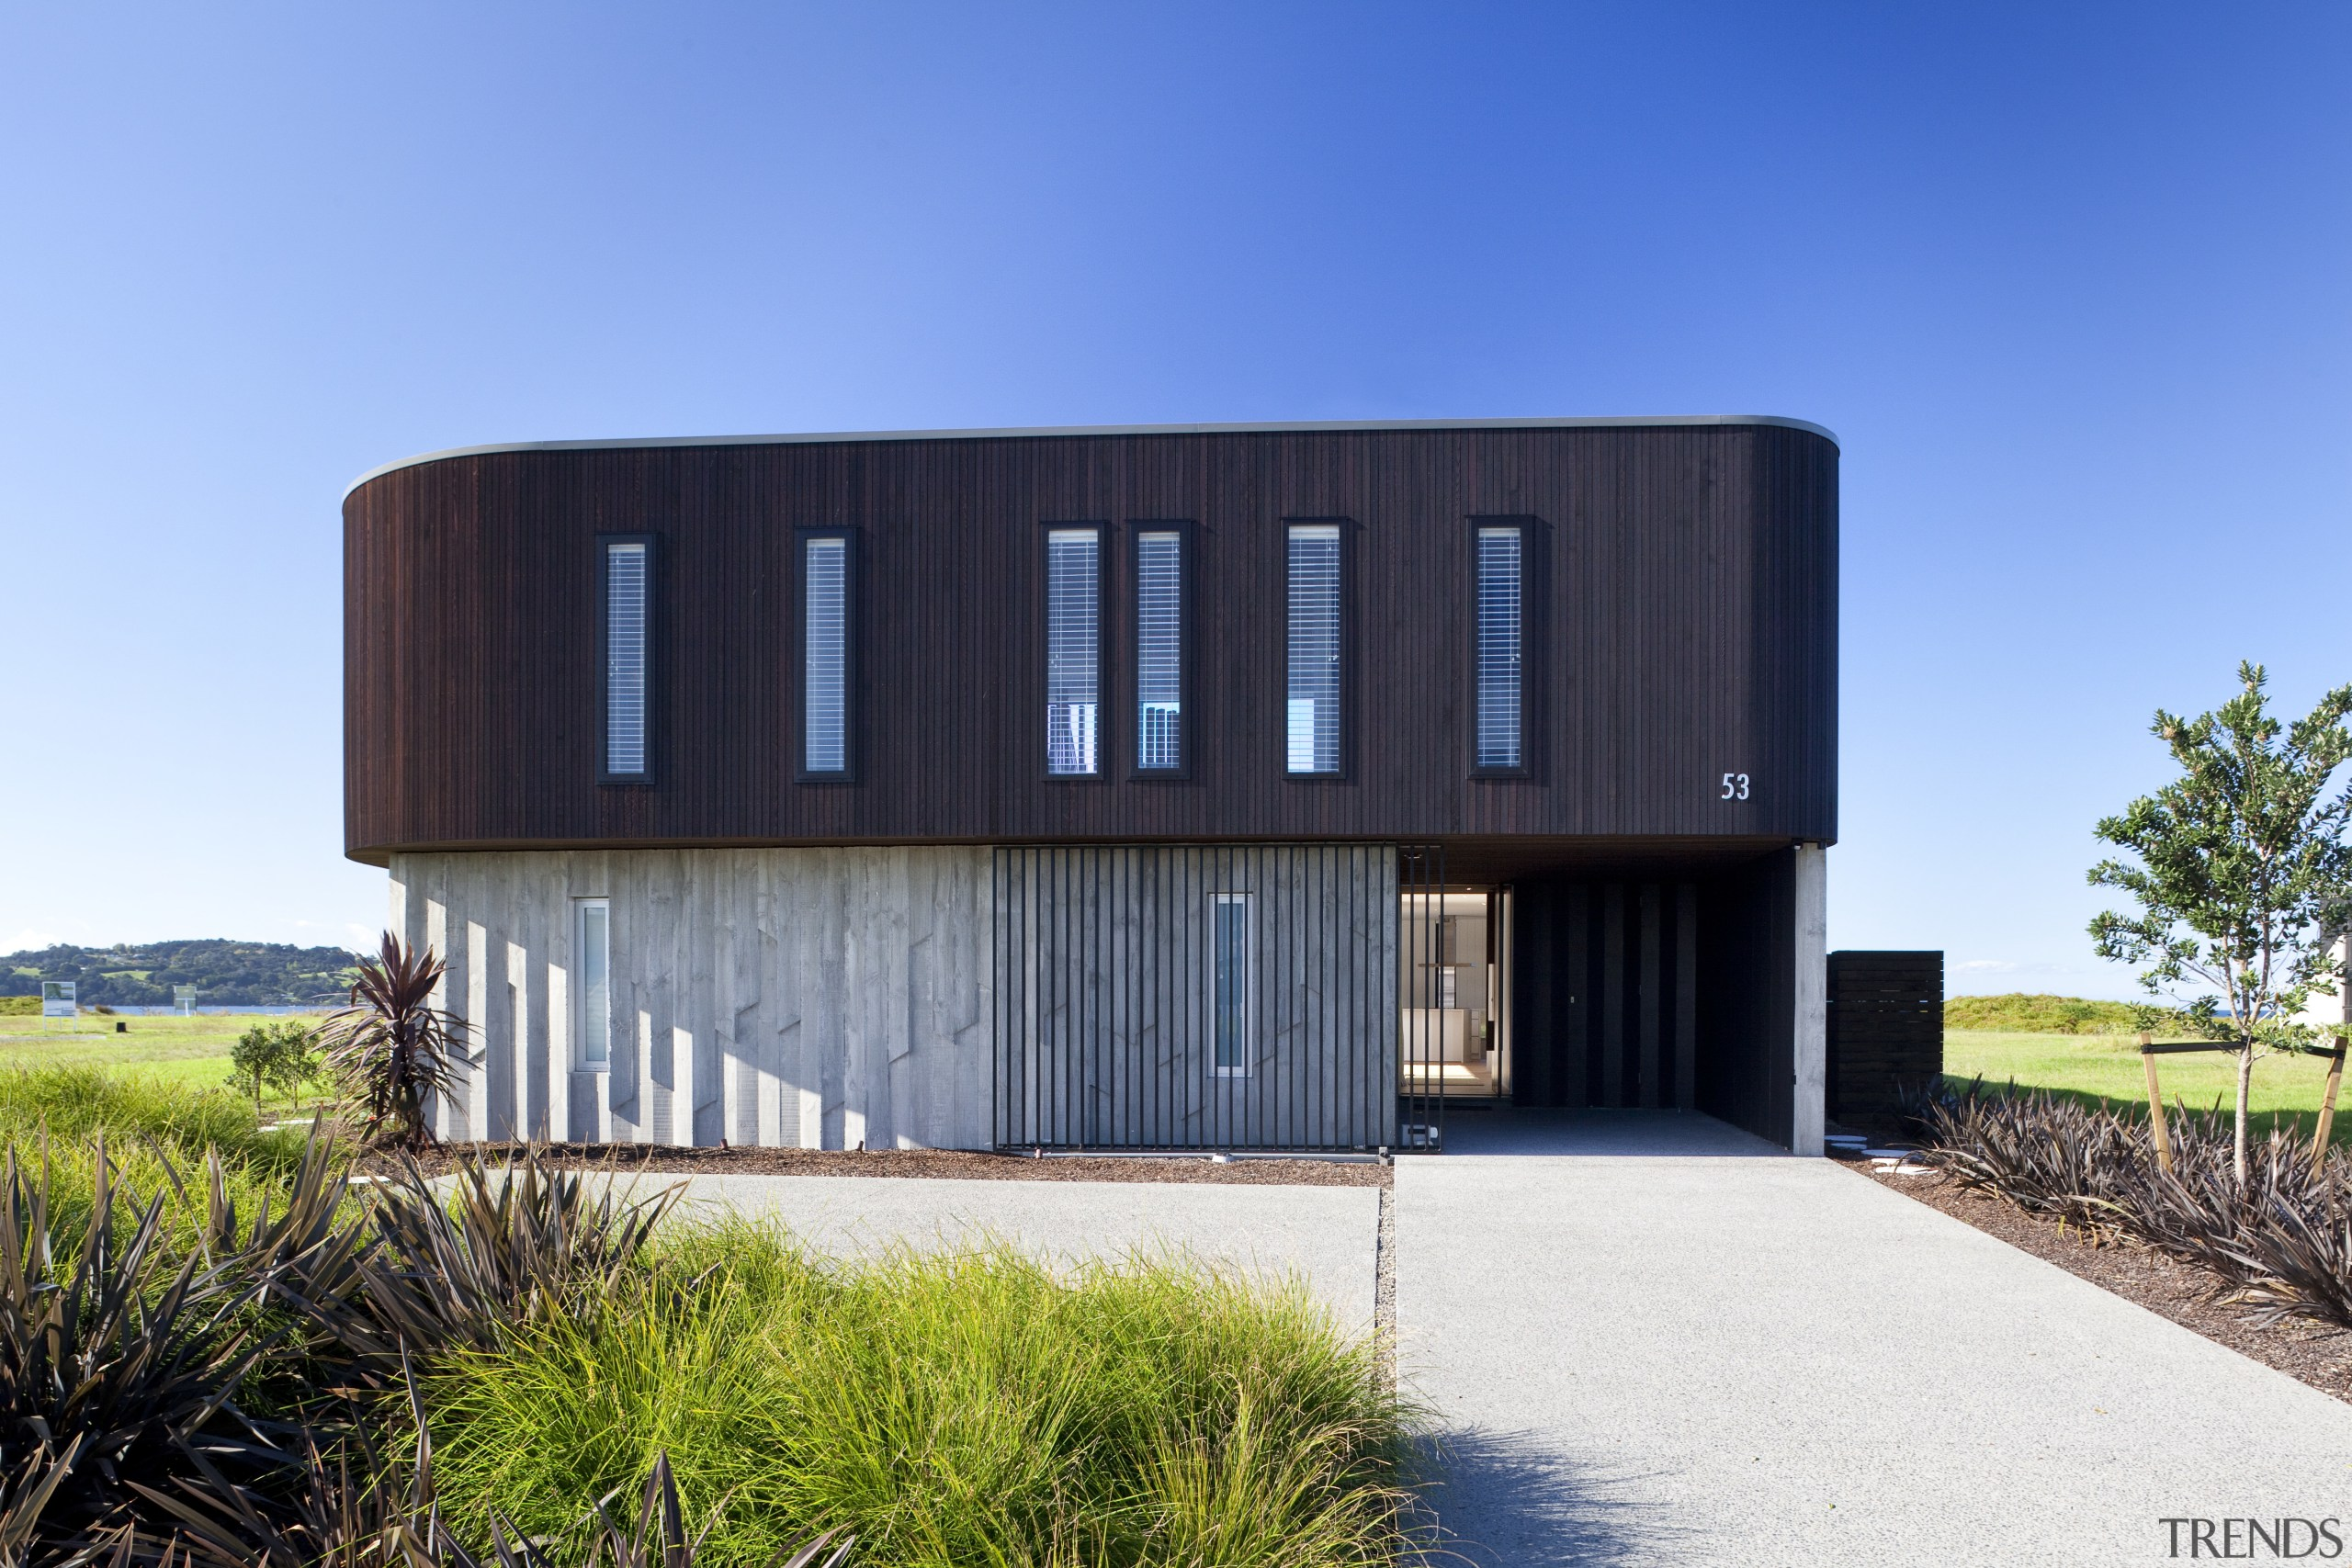 Ponting Fitzgerald-designed beach house - Ponting Fitzgerald-designed beach architecture, building, corporate headquarters, facade, home, house, property, real estate, sky, teal